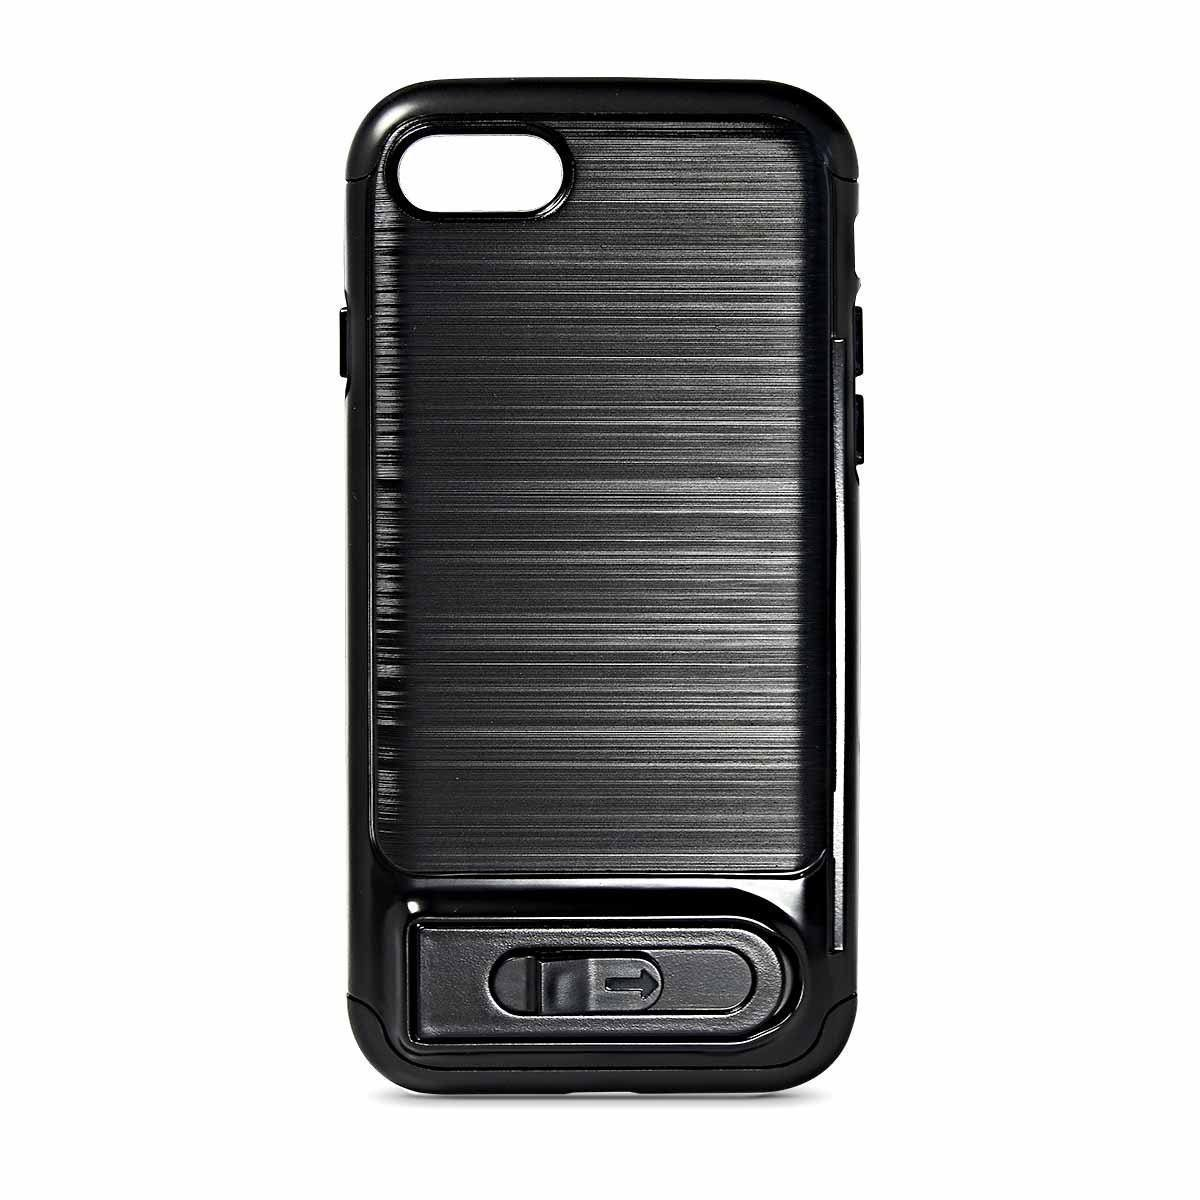 My Card Sliding Case for iPhone 6P - Black